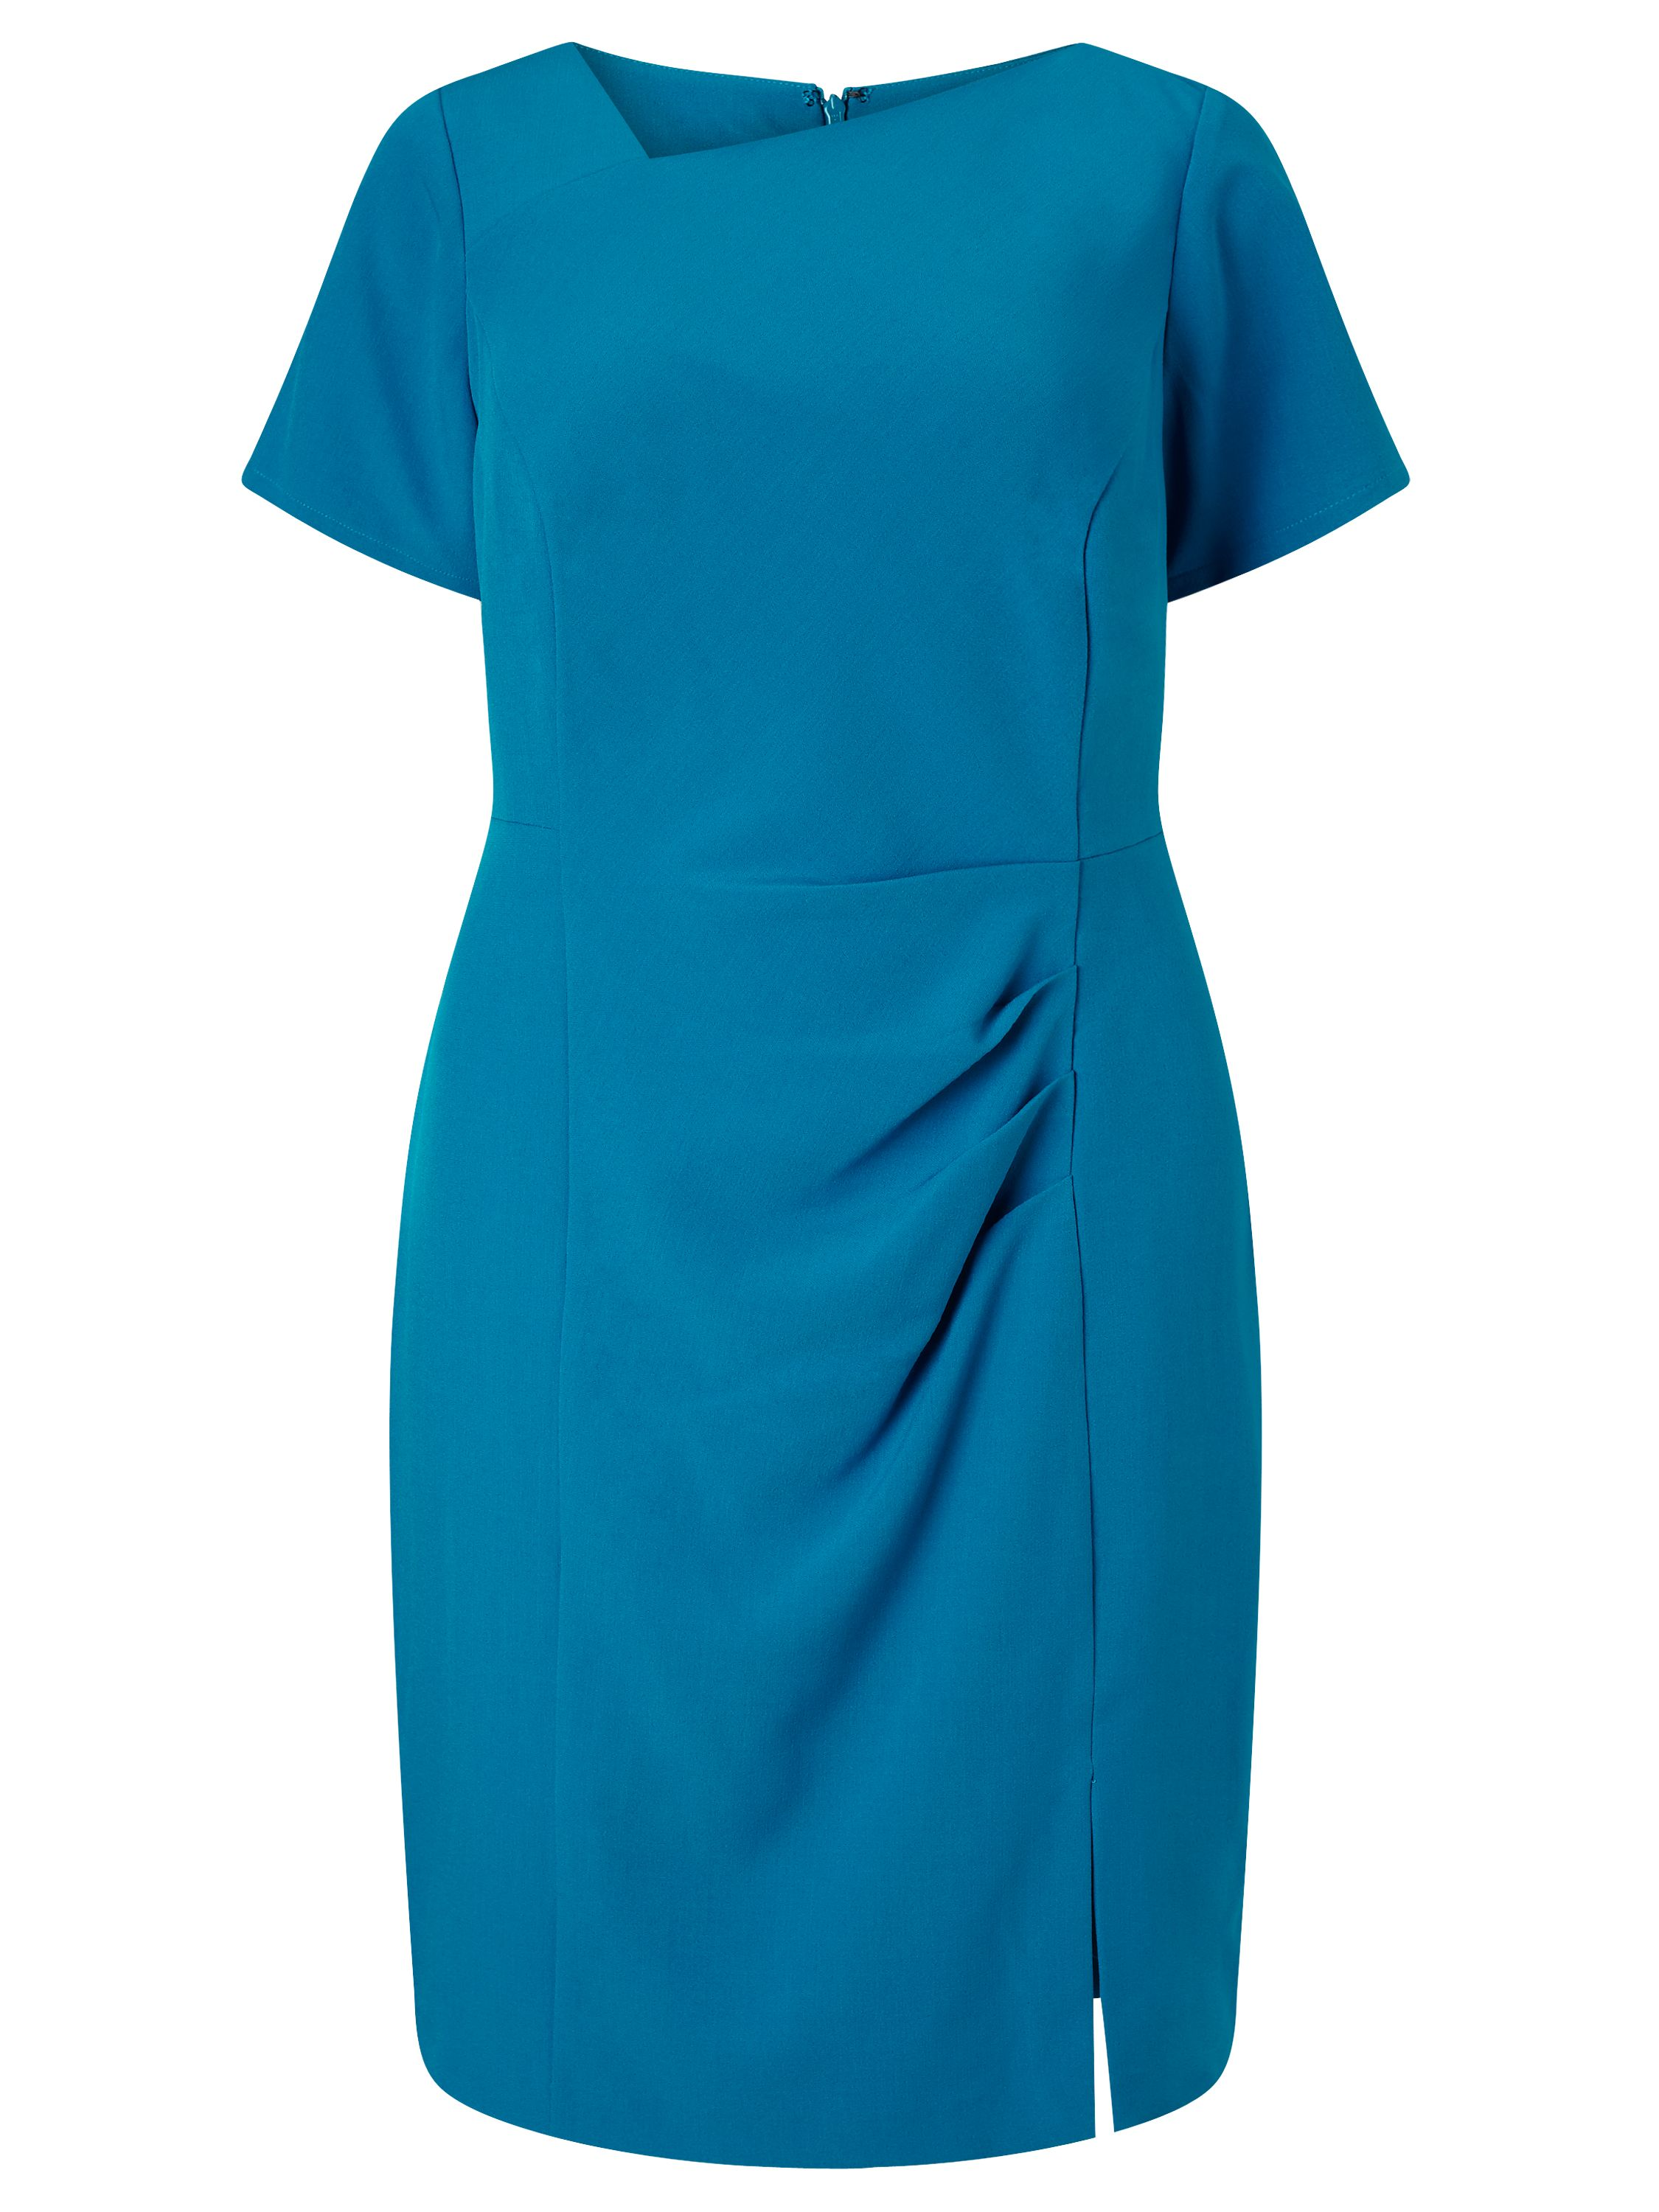 Adrianna Papell Short sleeve sheath dress, Blue